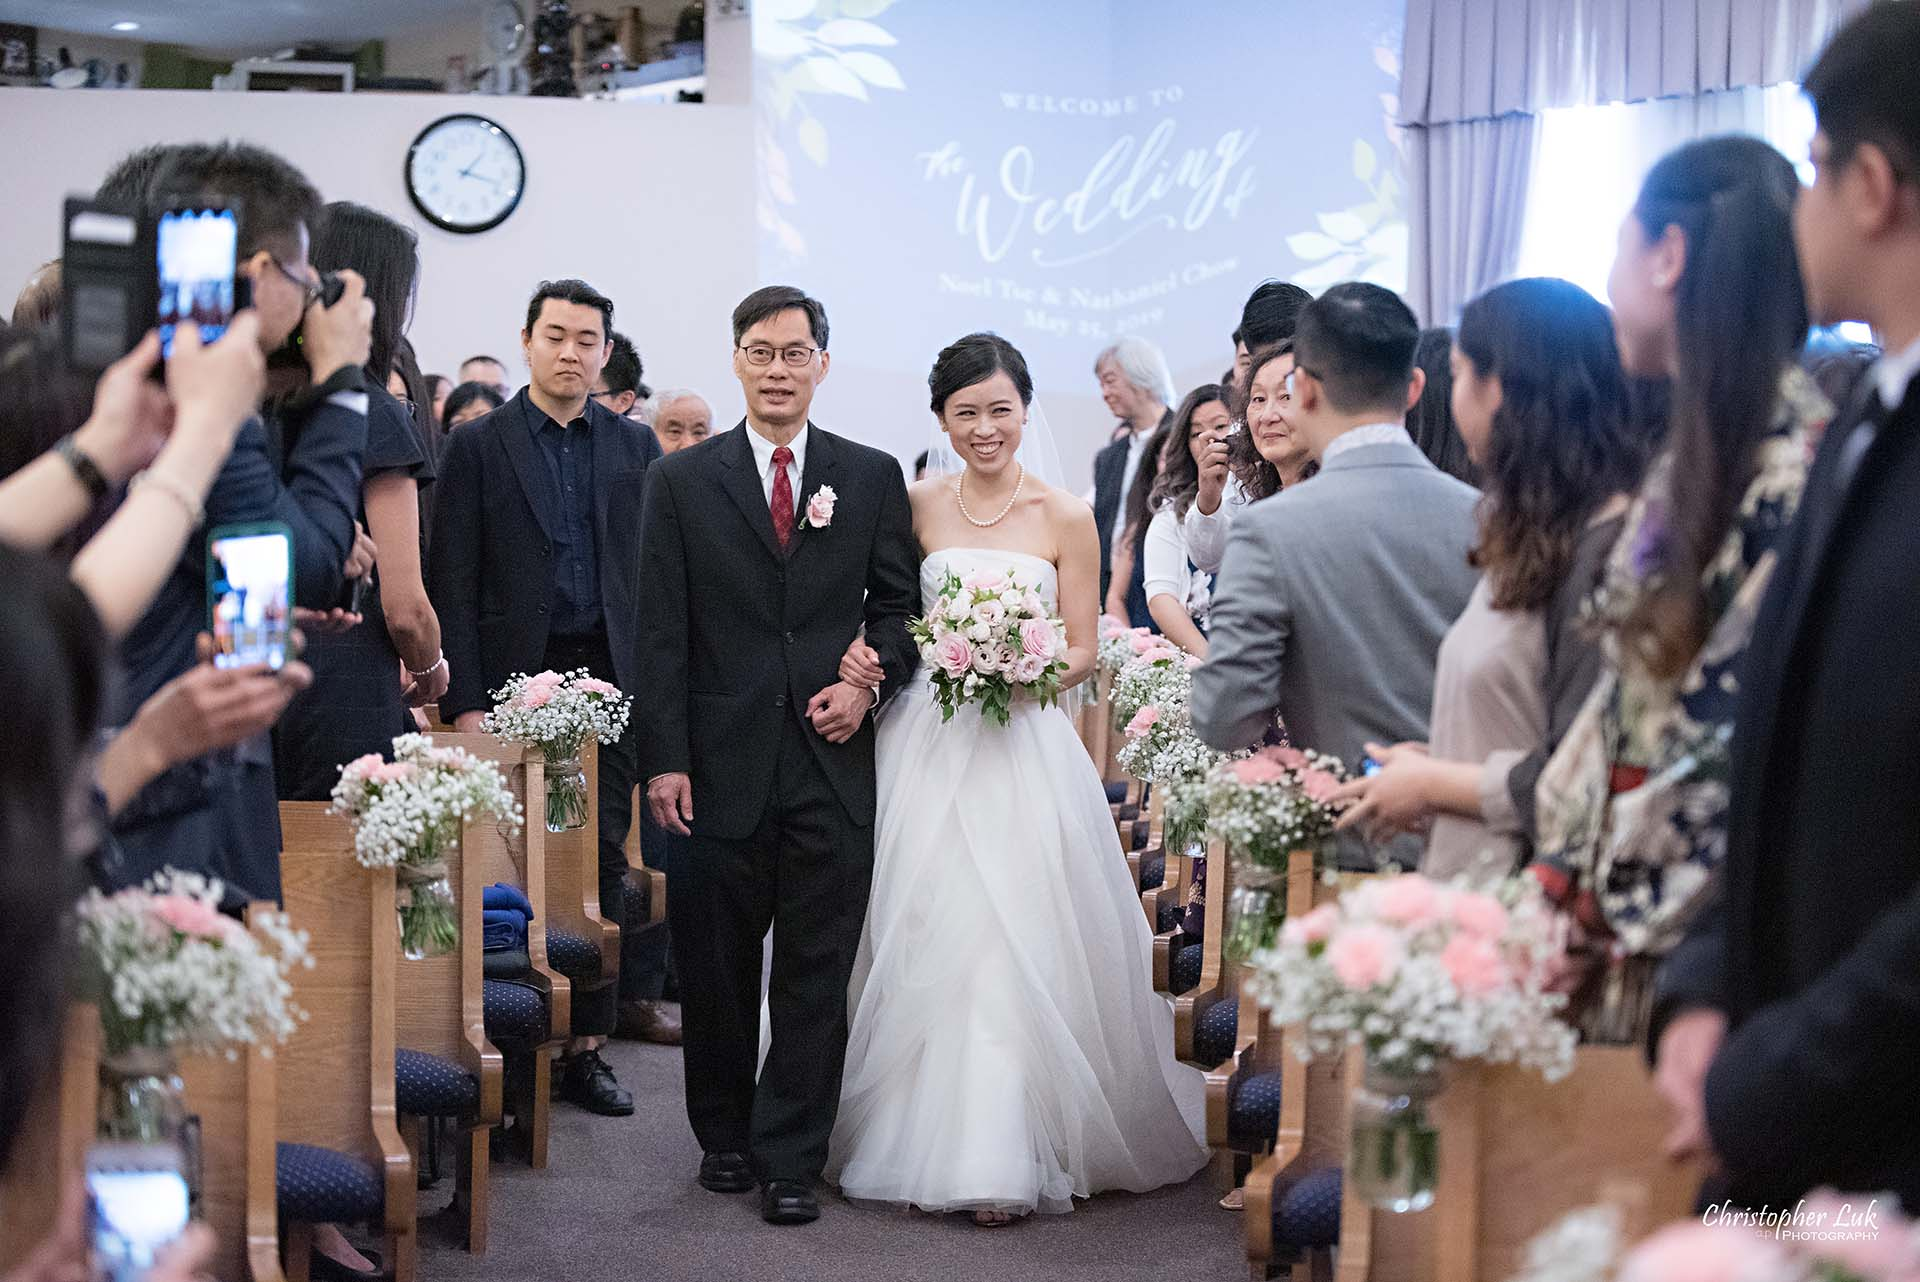 Christopher Luk Toronto Wedding Photographer Chinese Gospel Church Scarborough Ceremony Processional Bride Father Walking Down Aisle Together